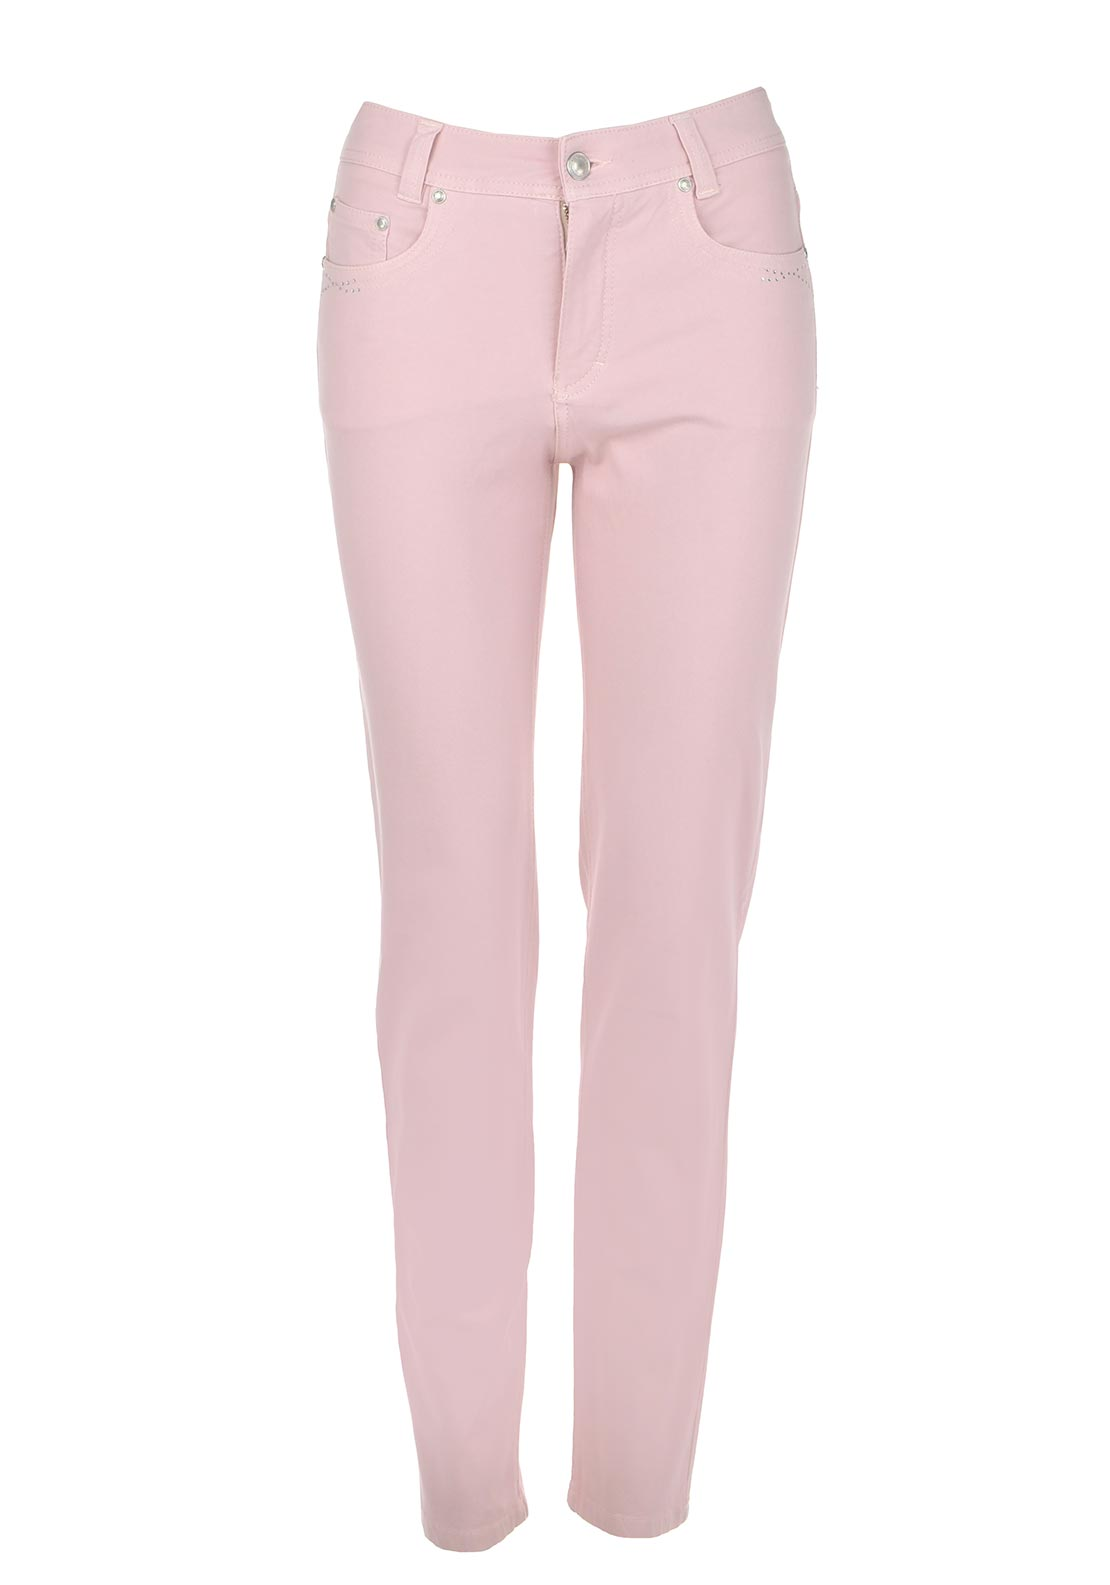 Anna Montana Angelika Magic Stretch Slim Leg Jeans, Rose Pink